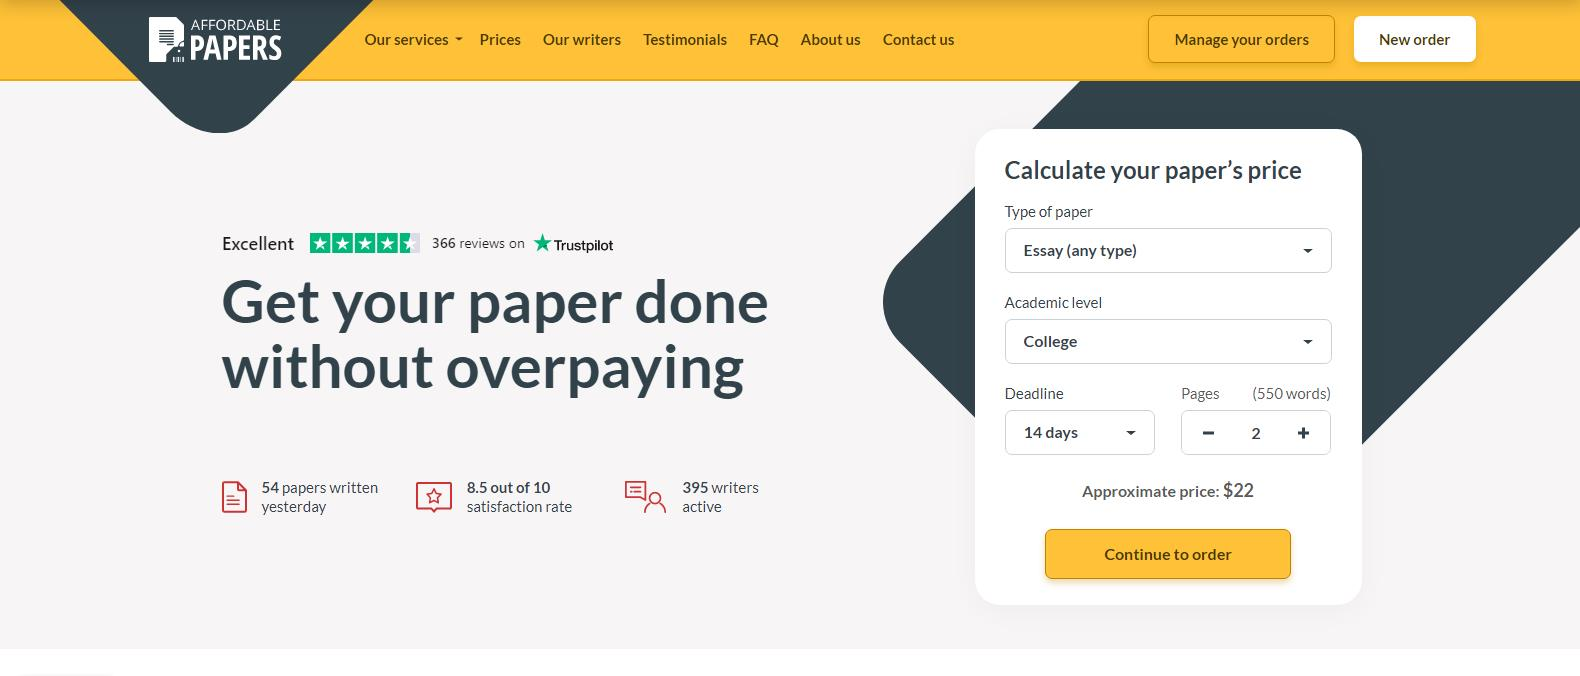 Affordable-Papers-3